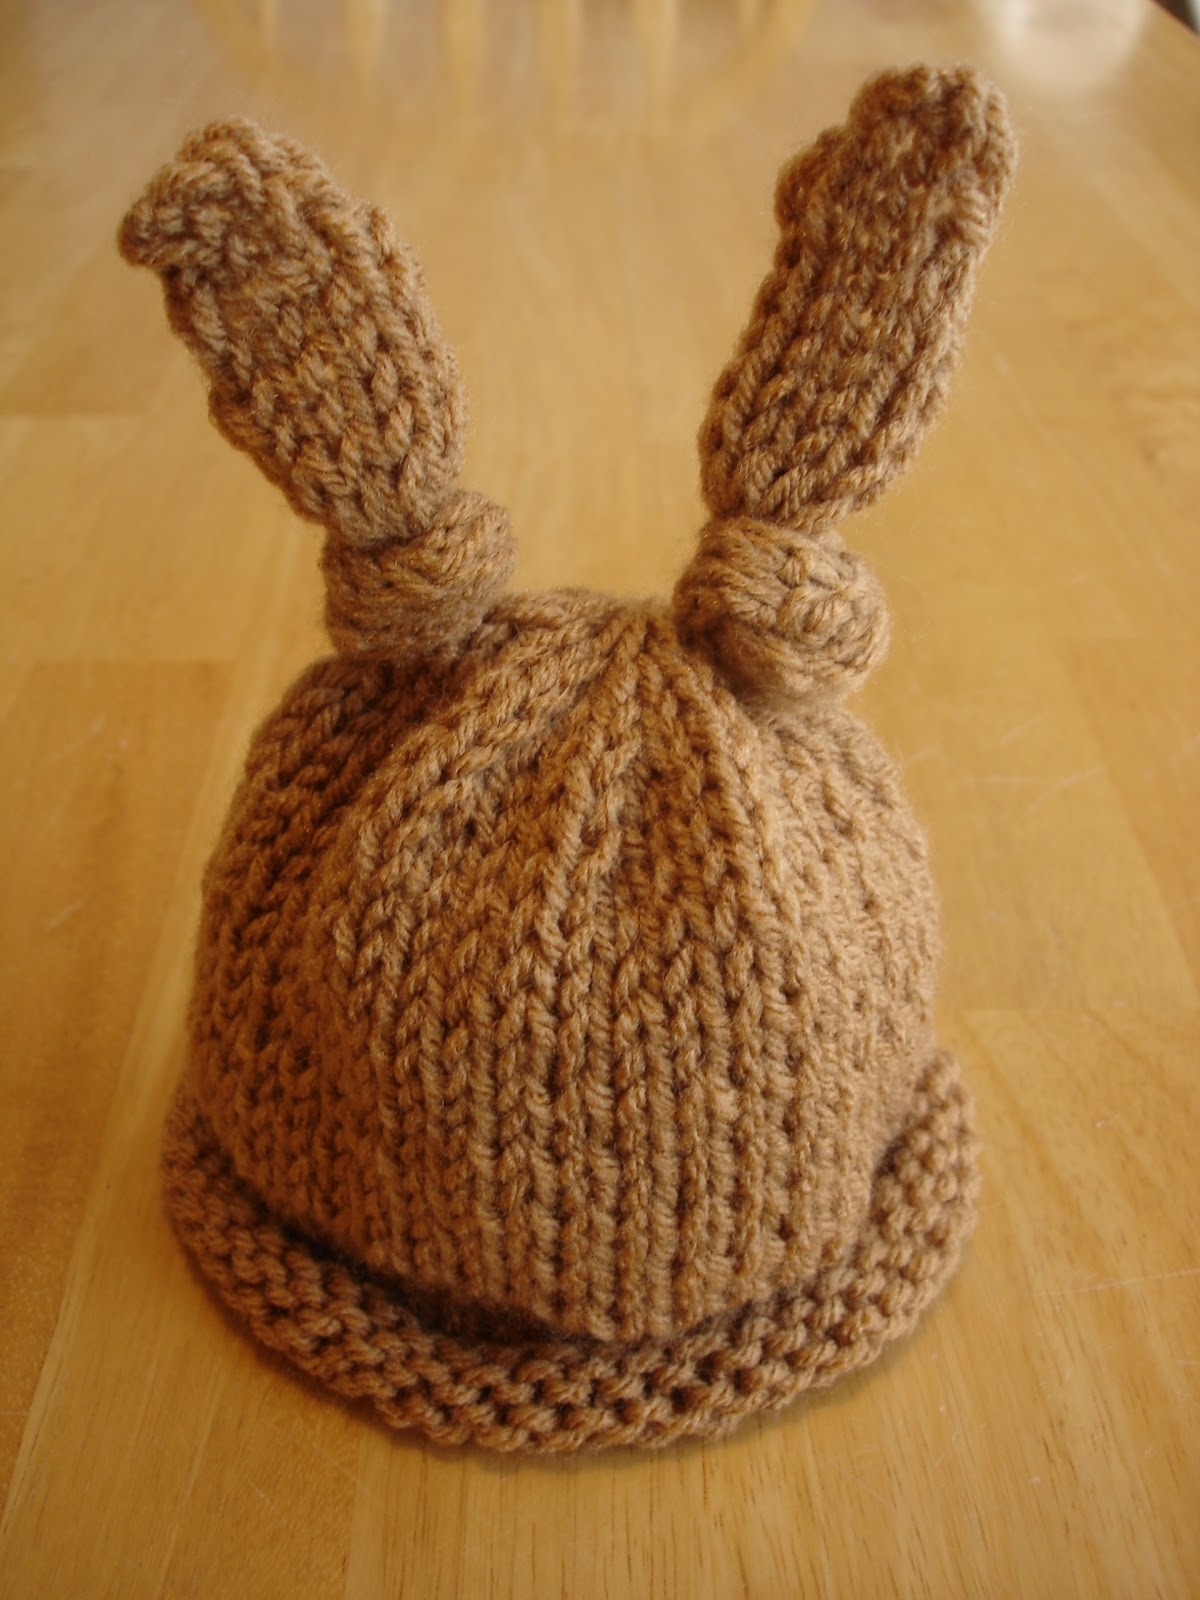 Knitting Pattern Preemie Baby Hat : Fiber Flux: Free Knitting Pattern...Baby Bunny Newborn or Preemie Hat!